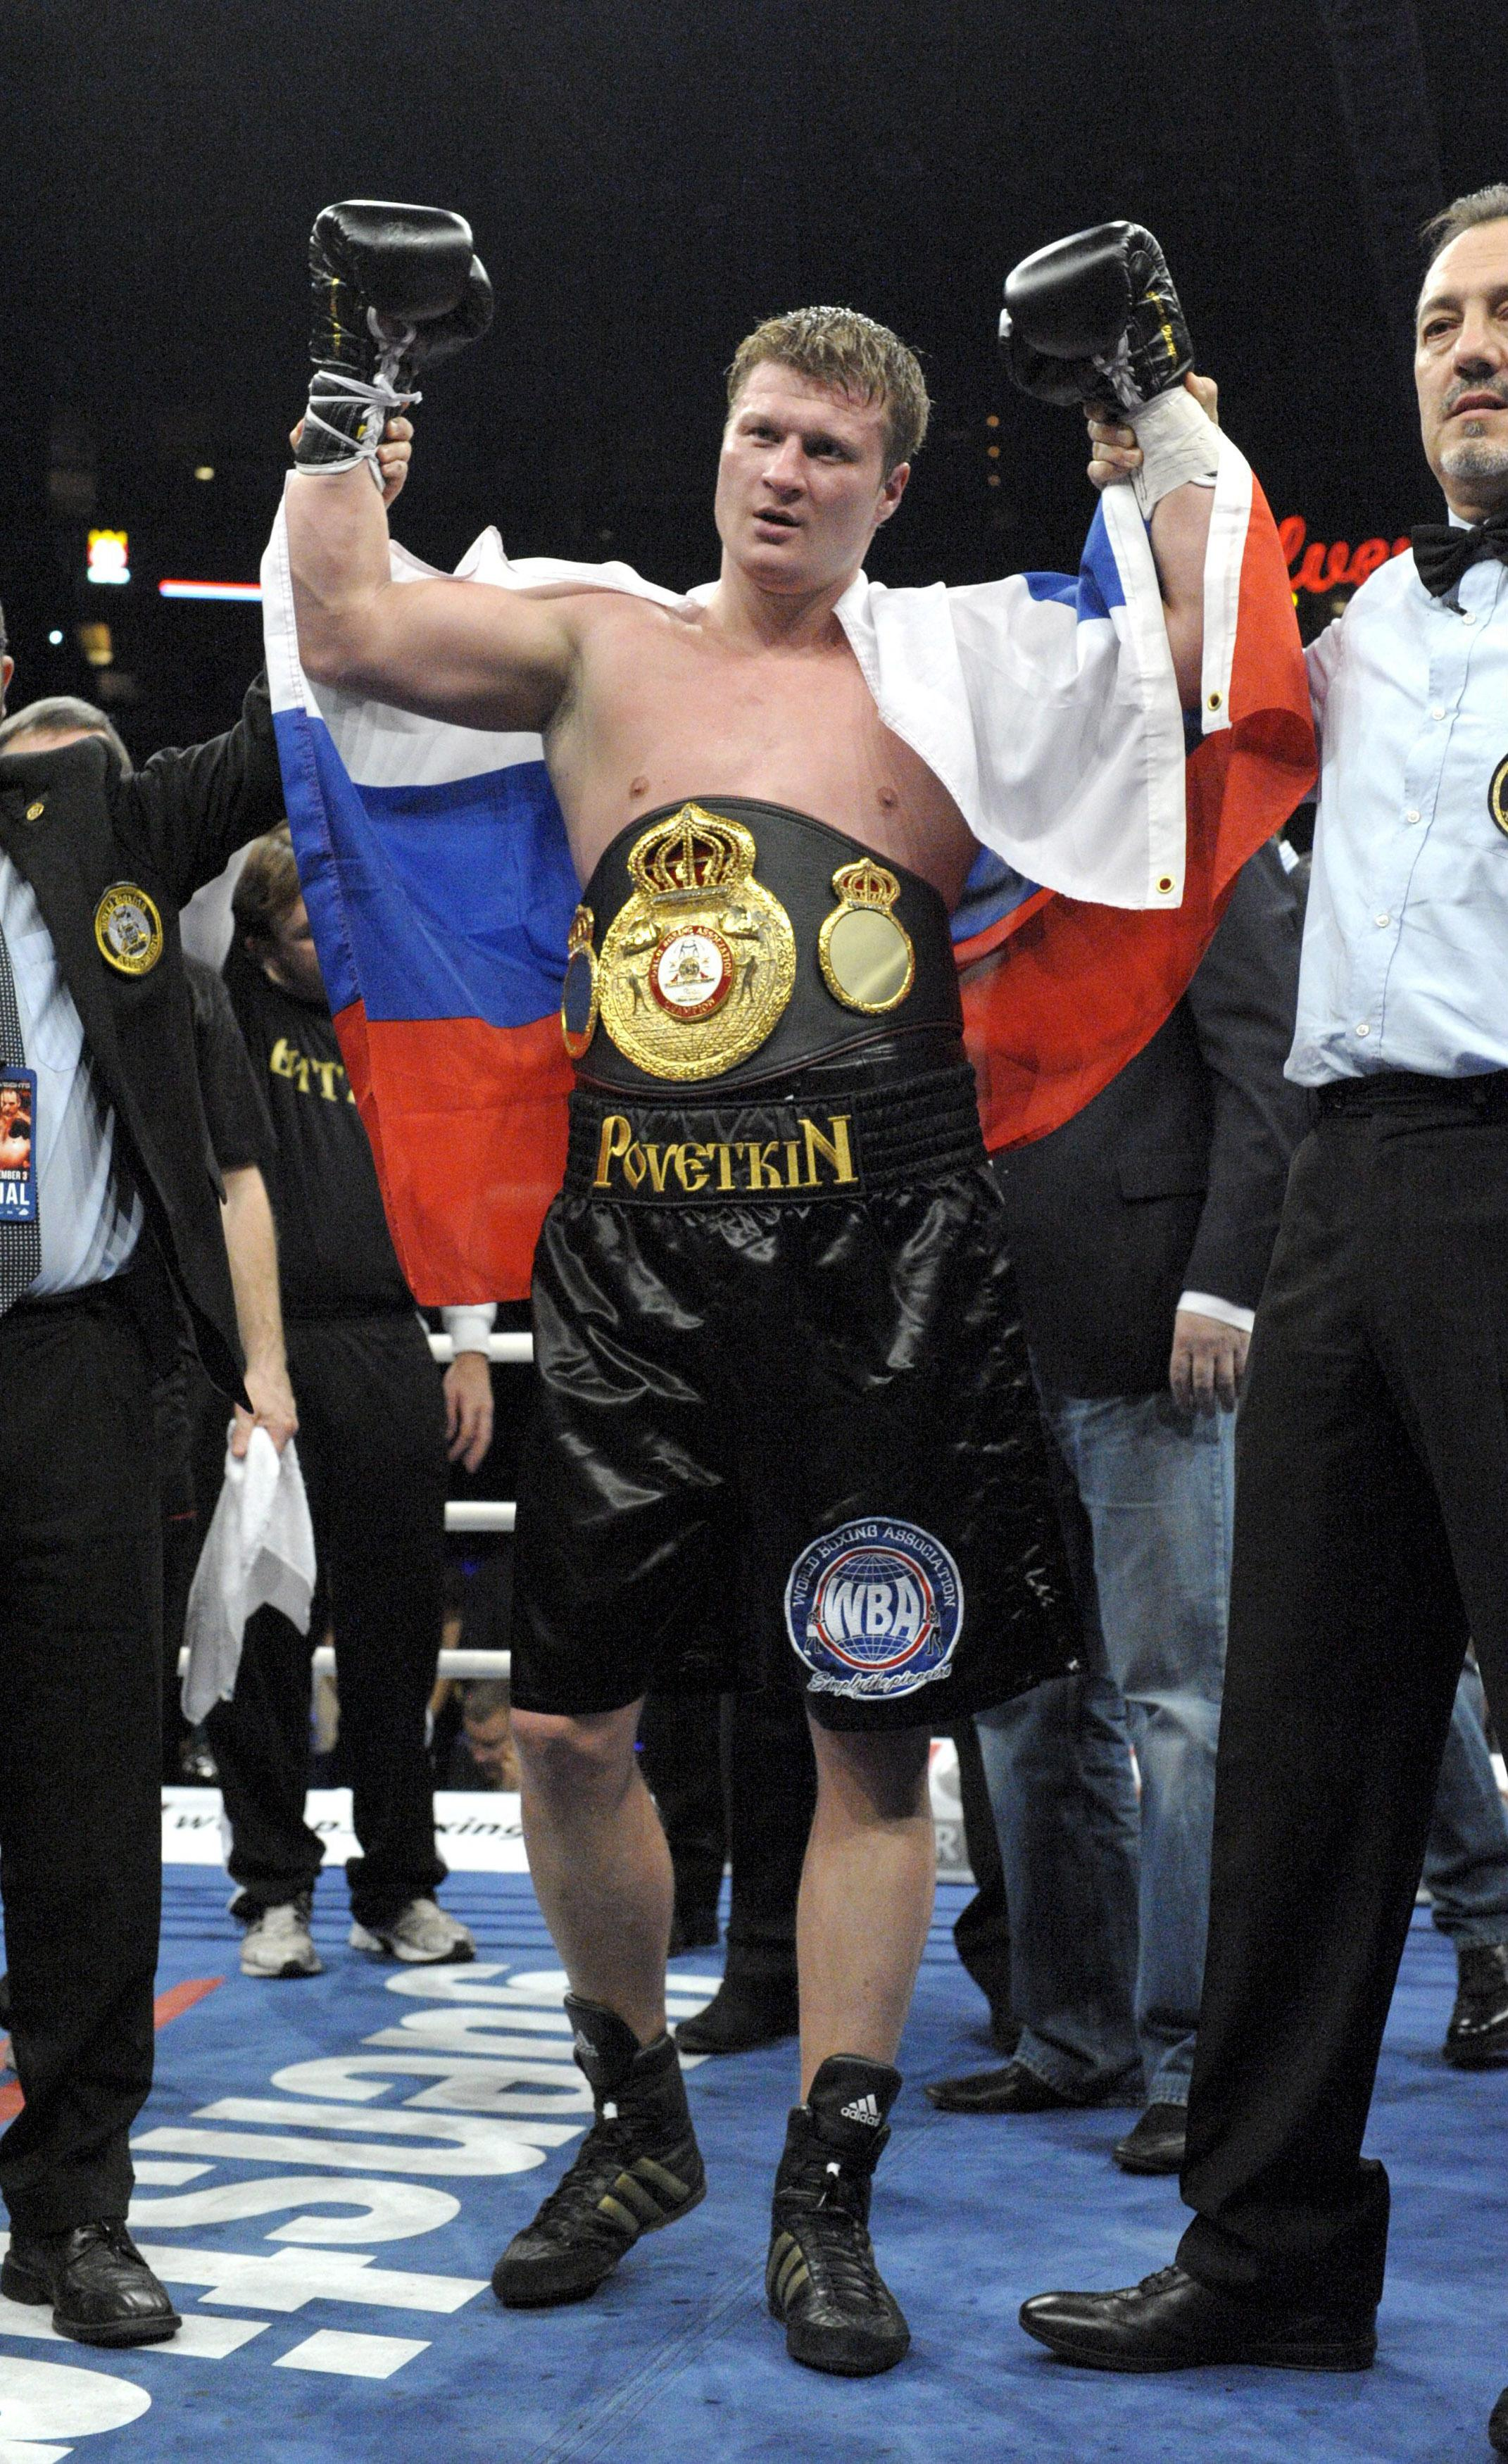 Povetkin failed drug tests in 2016 and 2017